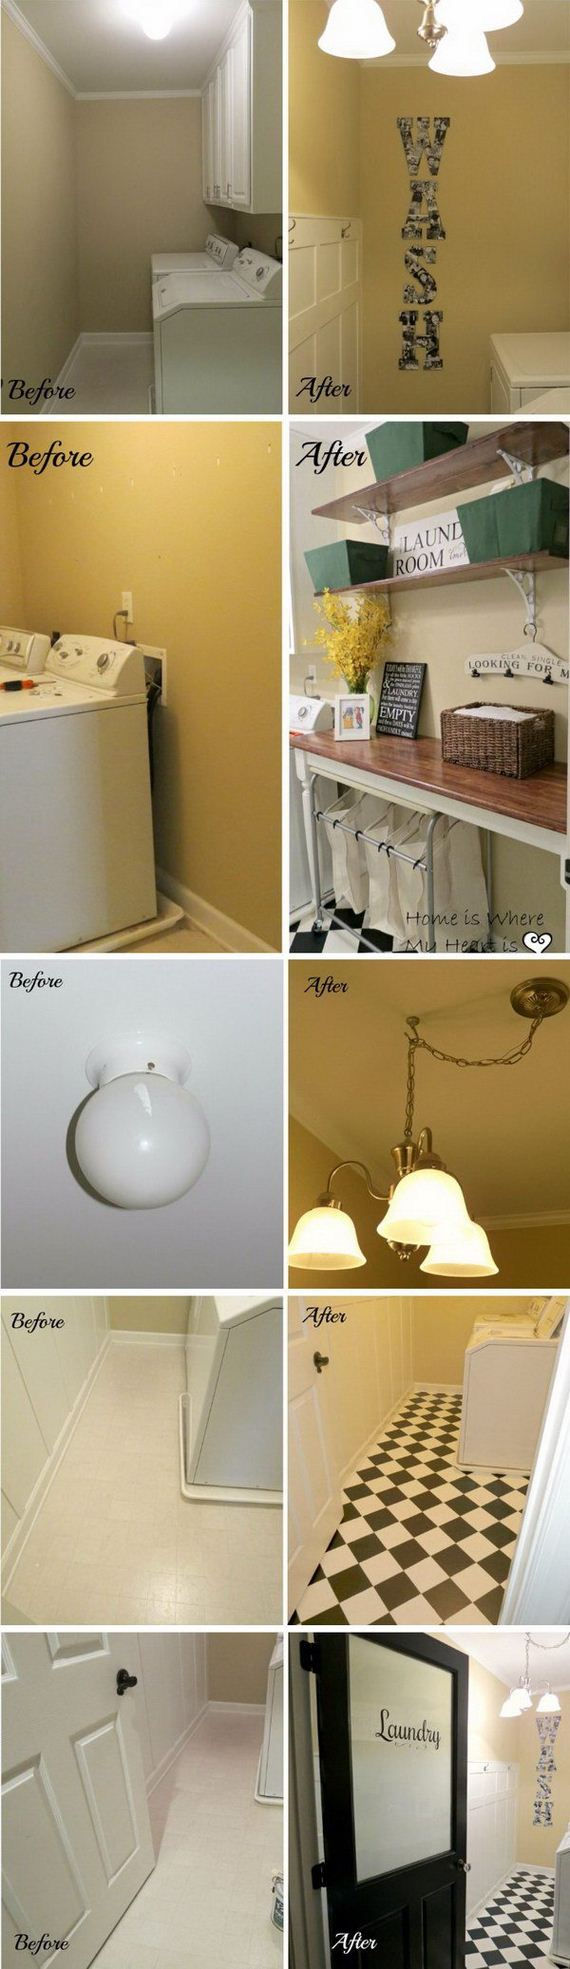 10-before-laundry-room